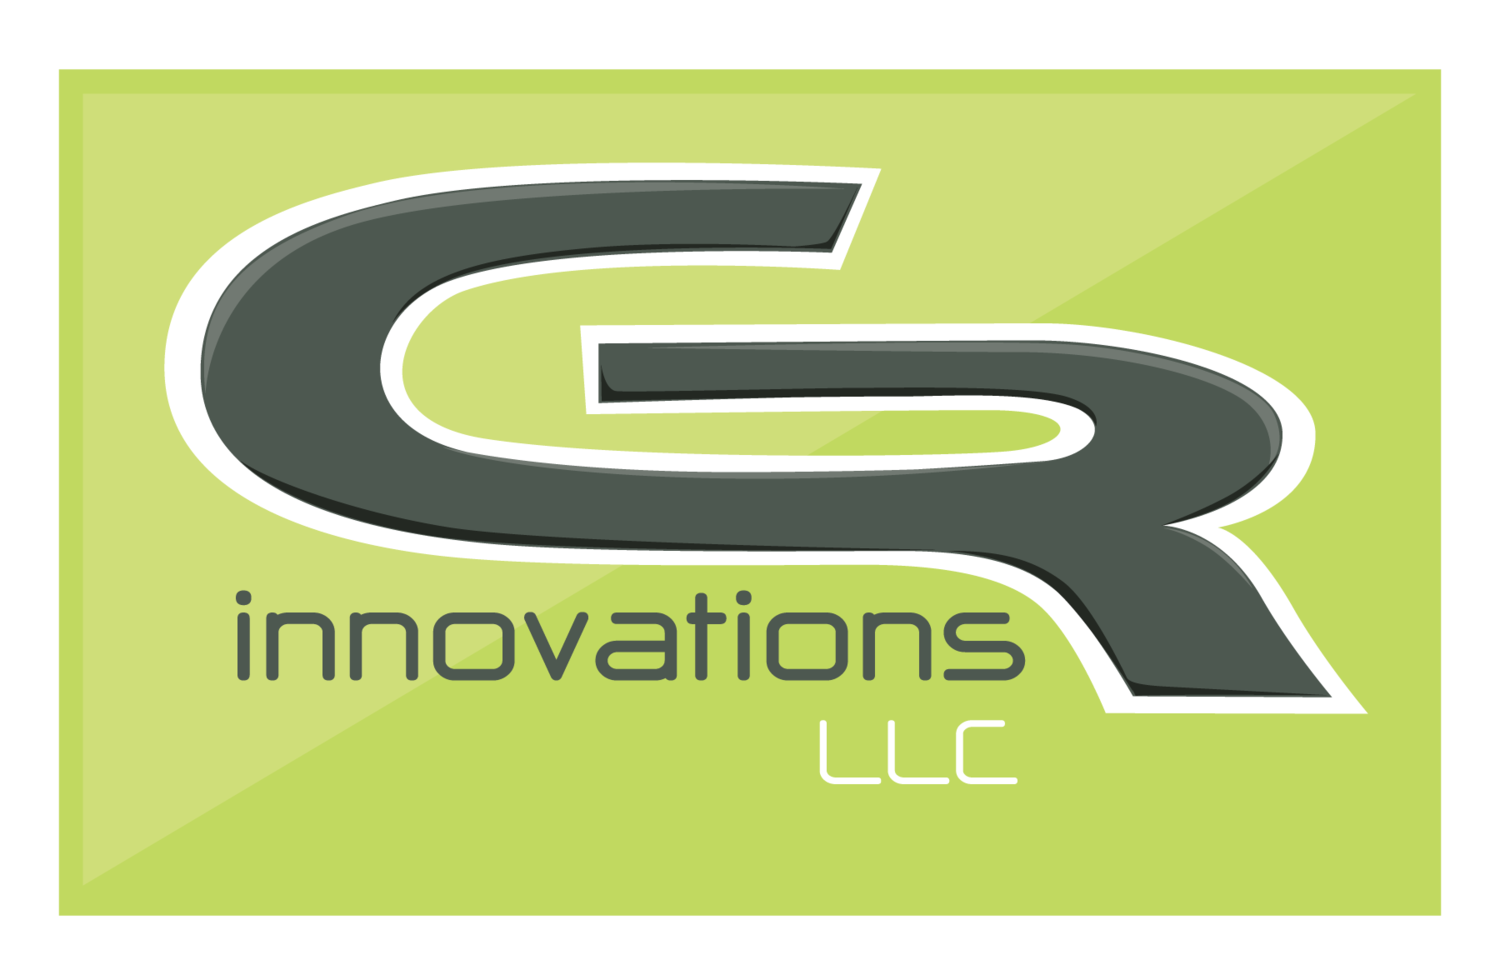 GR innovations LLC